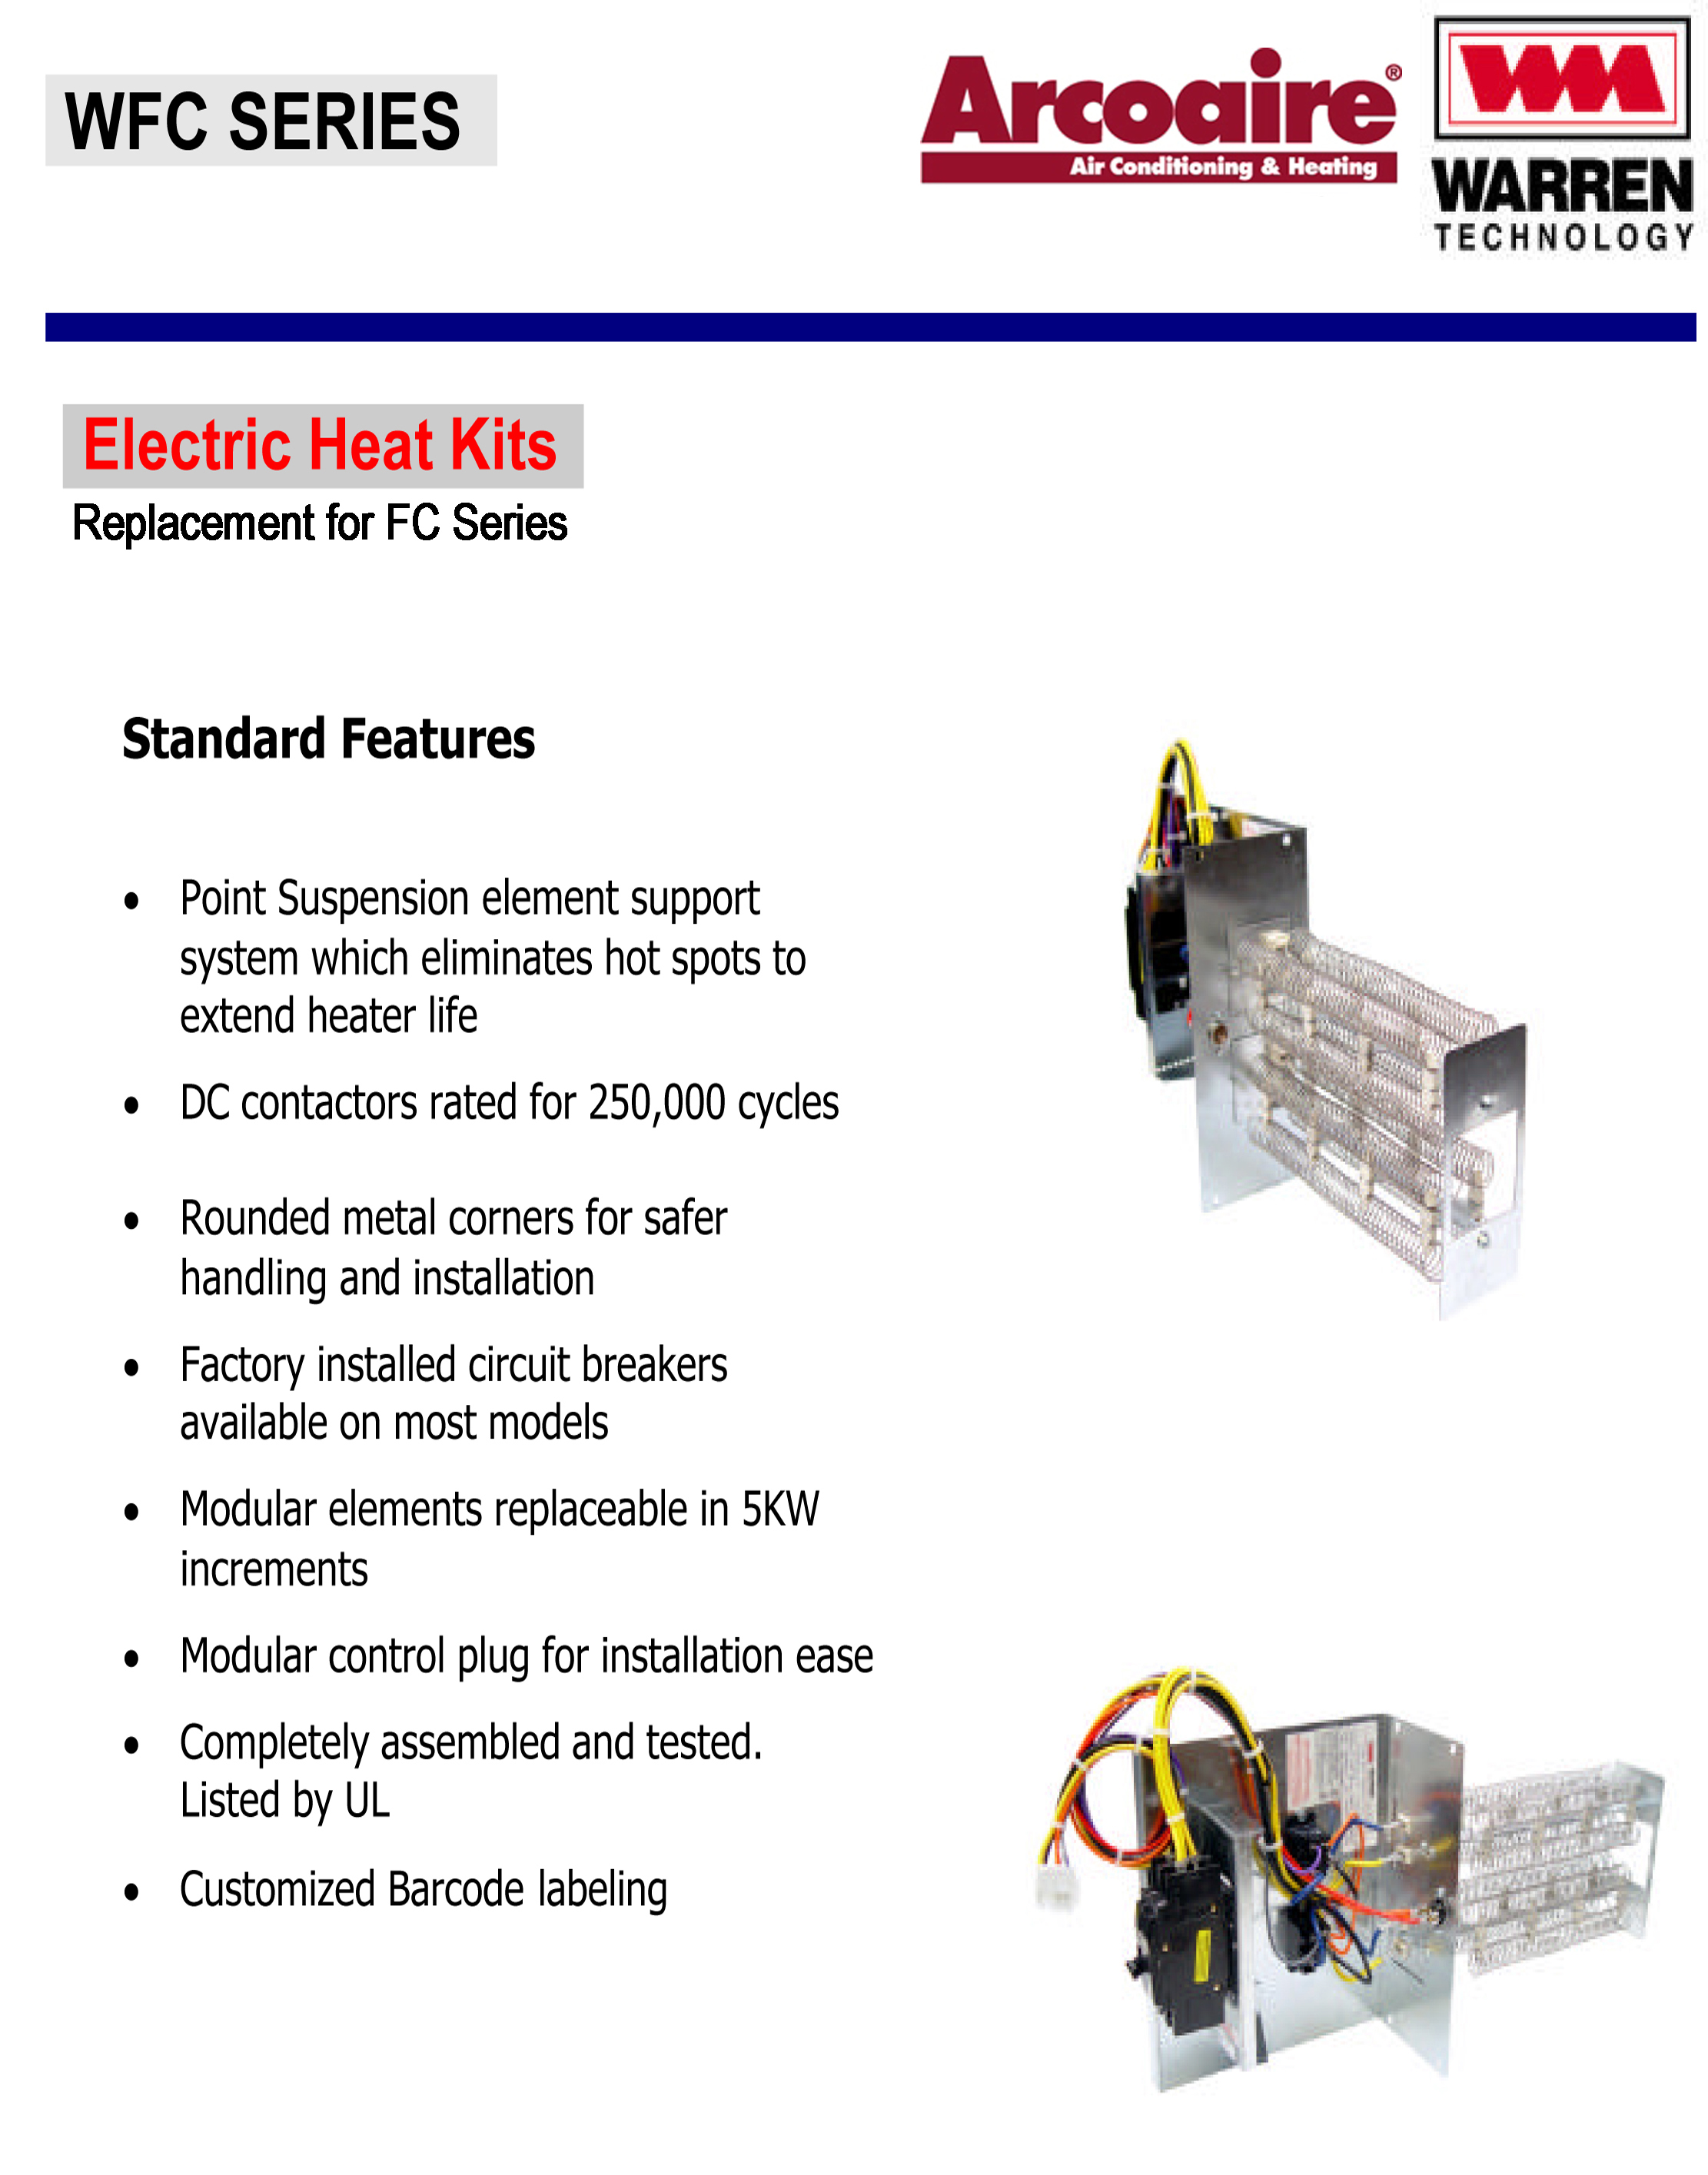 arcoaire wfc brochure copy 15 kw breakered heat strip for arcoaire air handlers fcv, fcp, fcx heat strip wiring diagram at bakdesigns.co